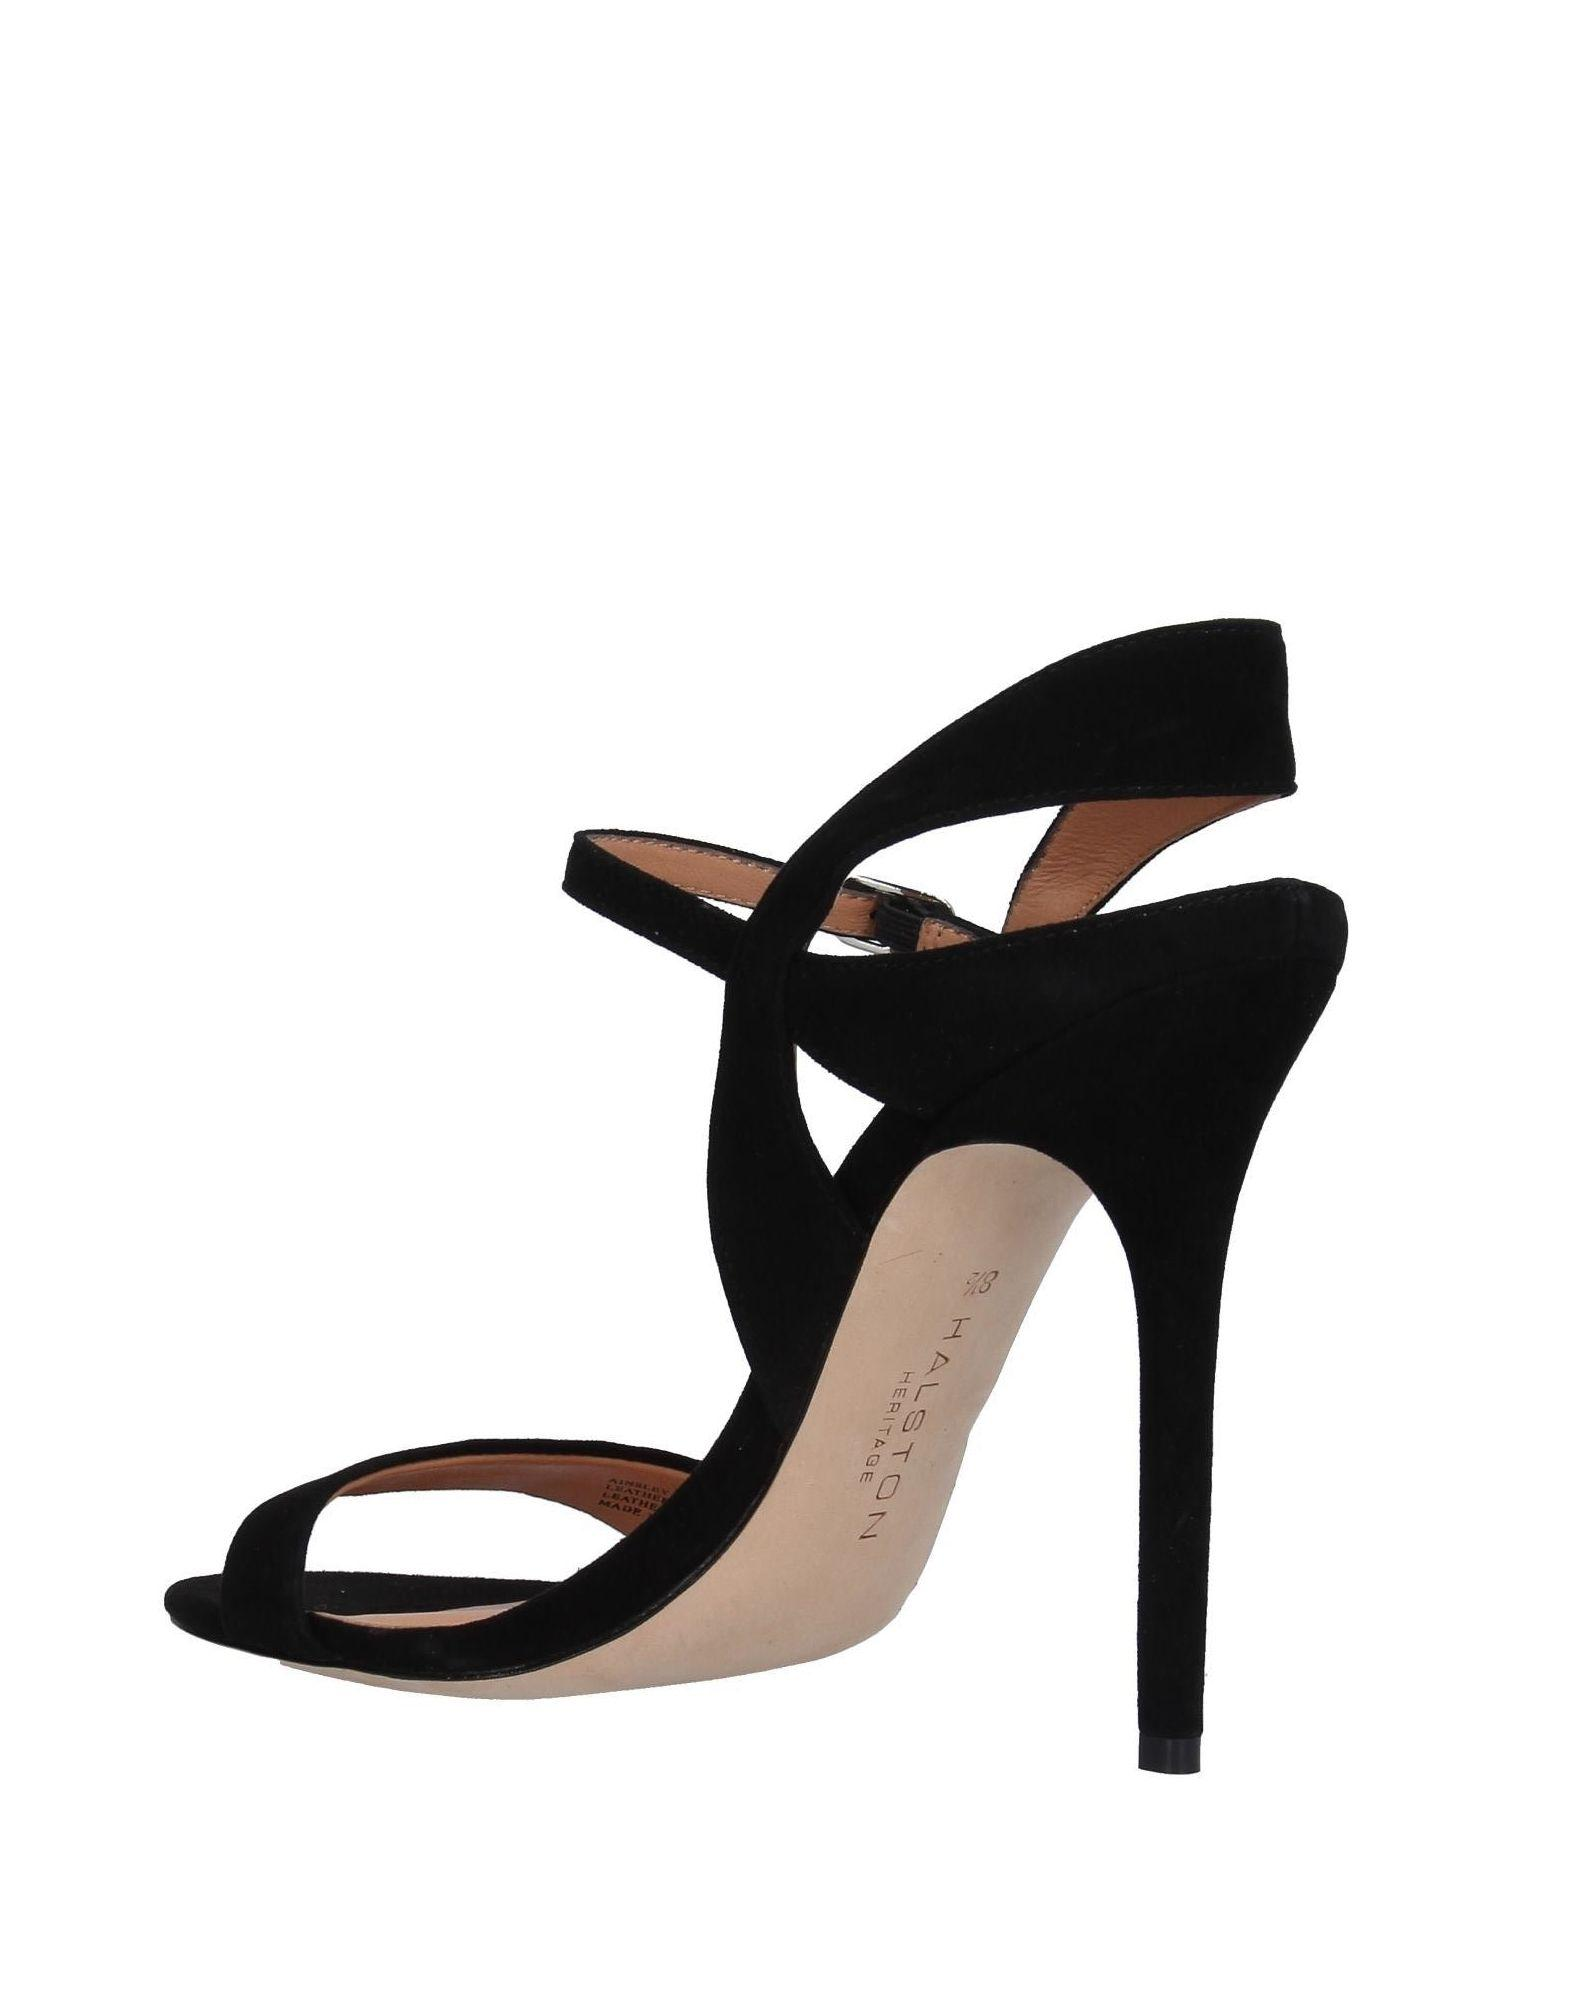 68b3b5b41da Lyst - Halston Heritage Sandals in Black